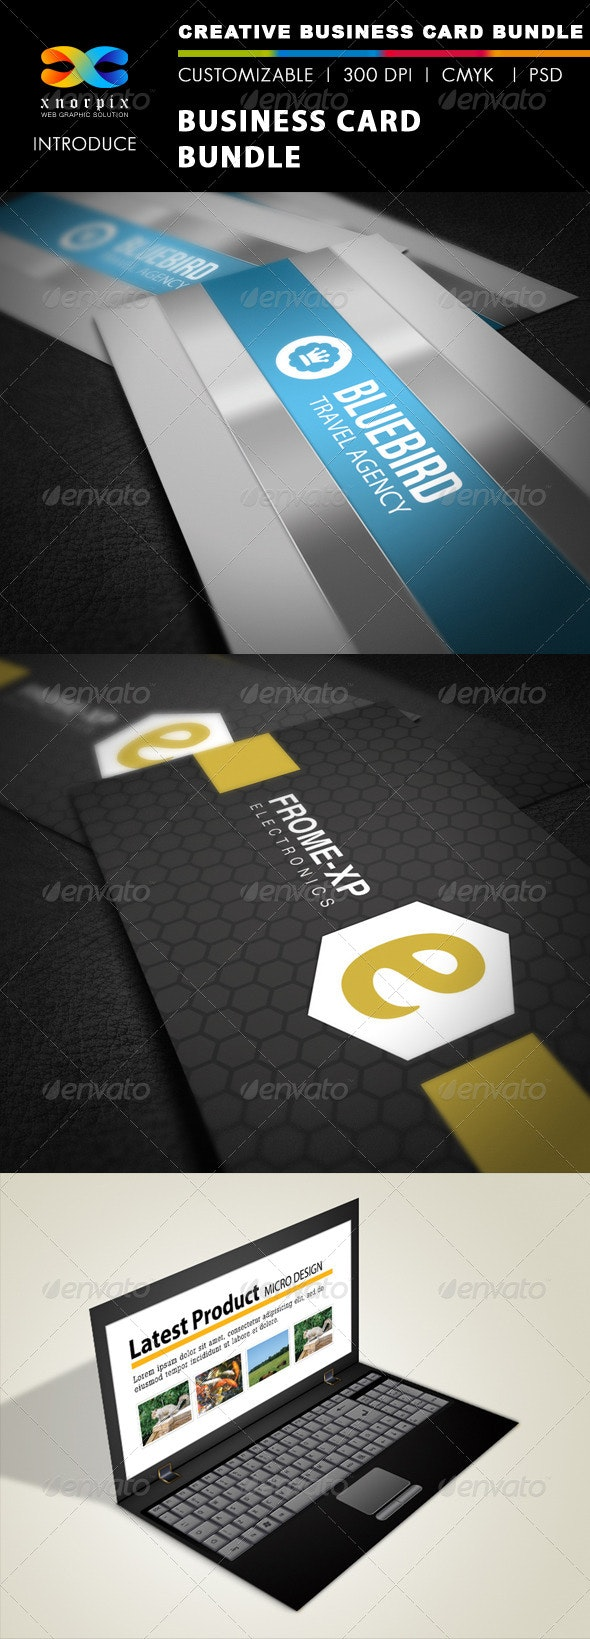 Business Card Bundle 3 in 1-Vol 16 - Corporate Business Cards